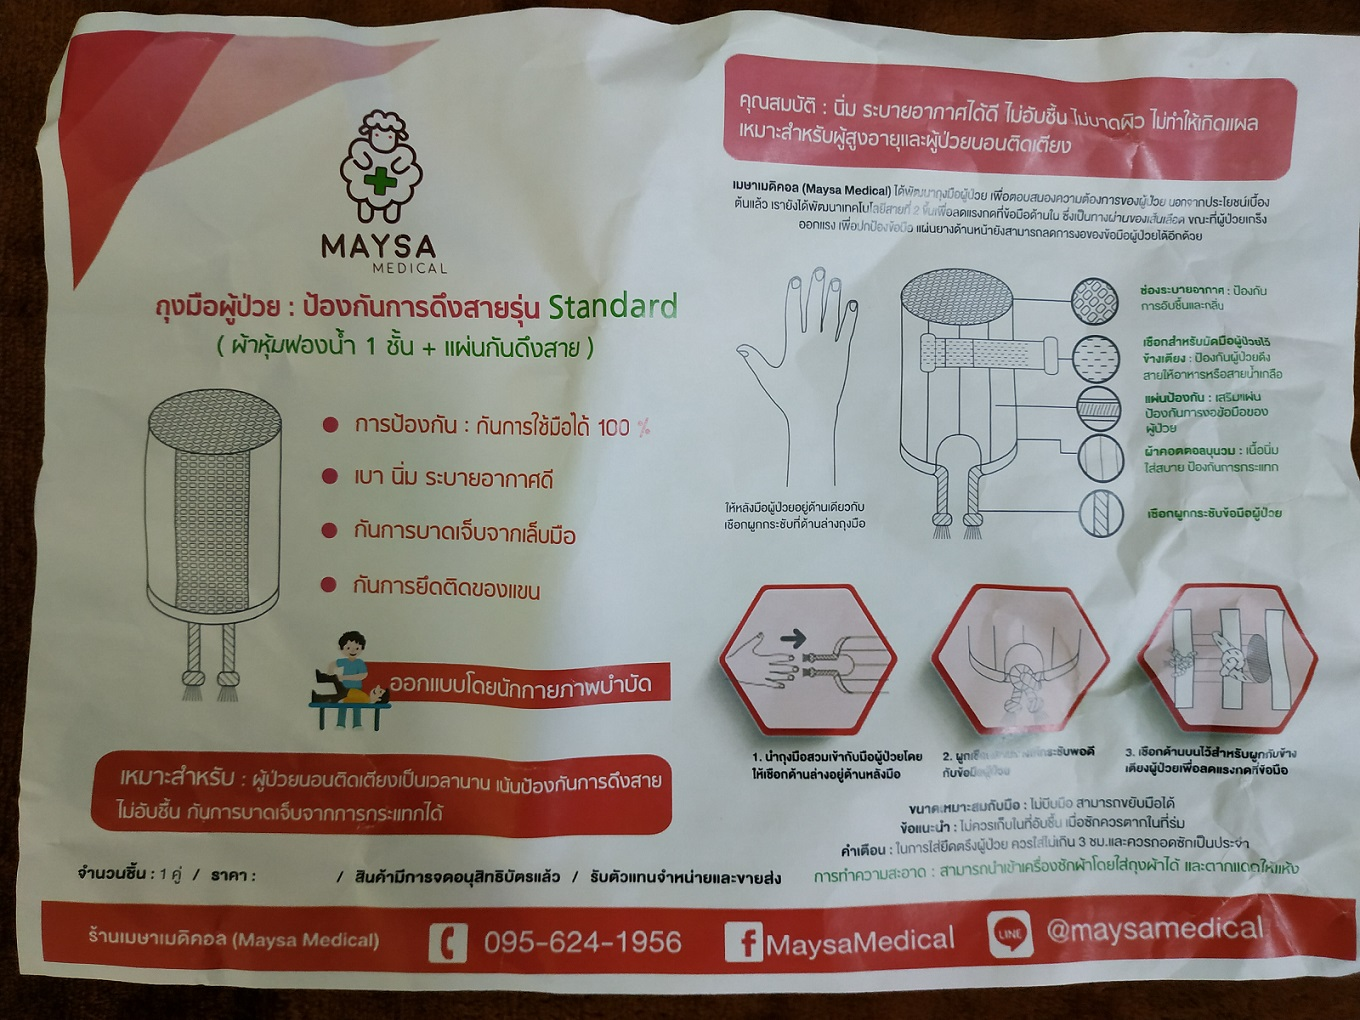 tiehandbrochure - Hand restraints/special mittens for Alzhmeimer's/dementia patients on tube feeding